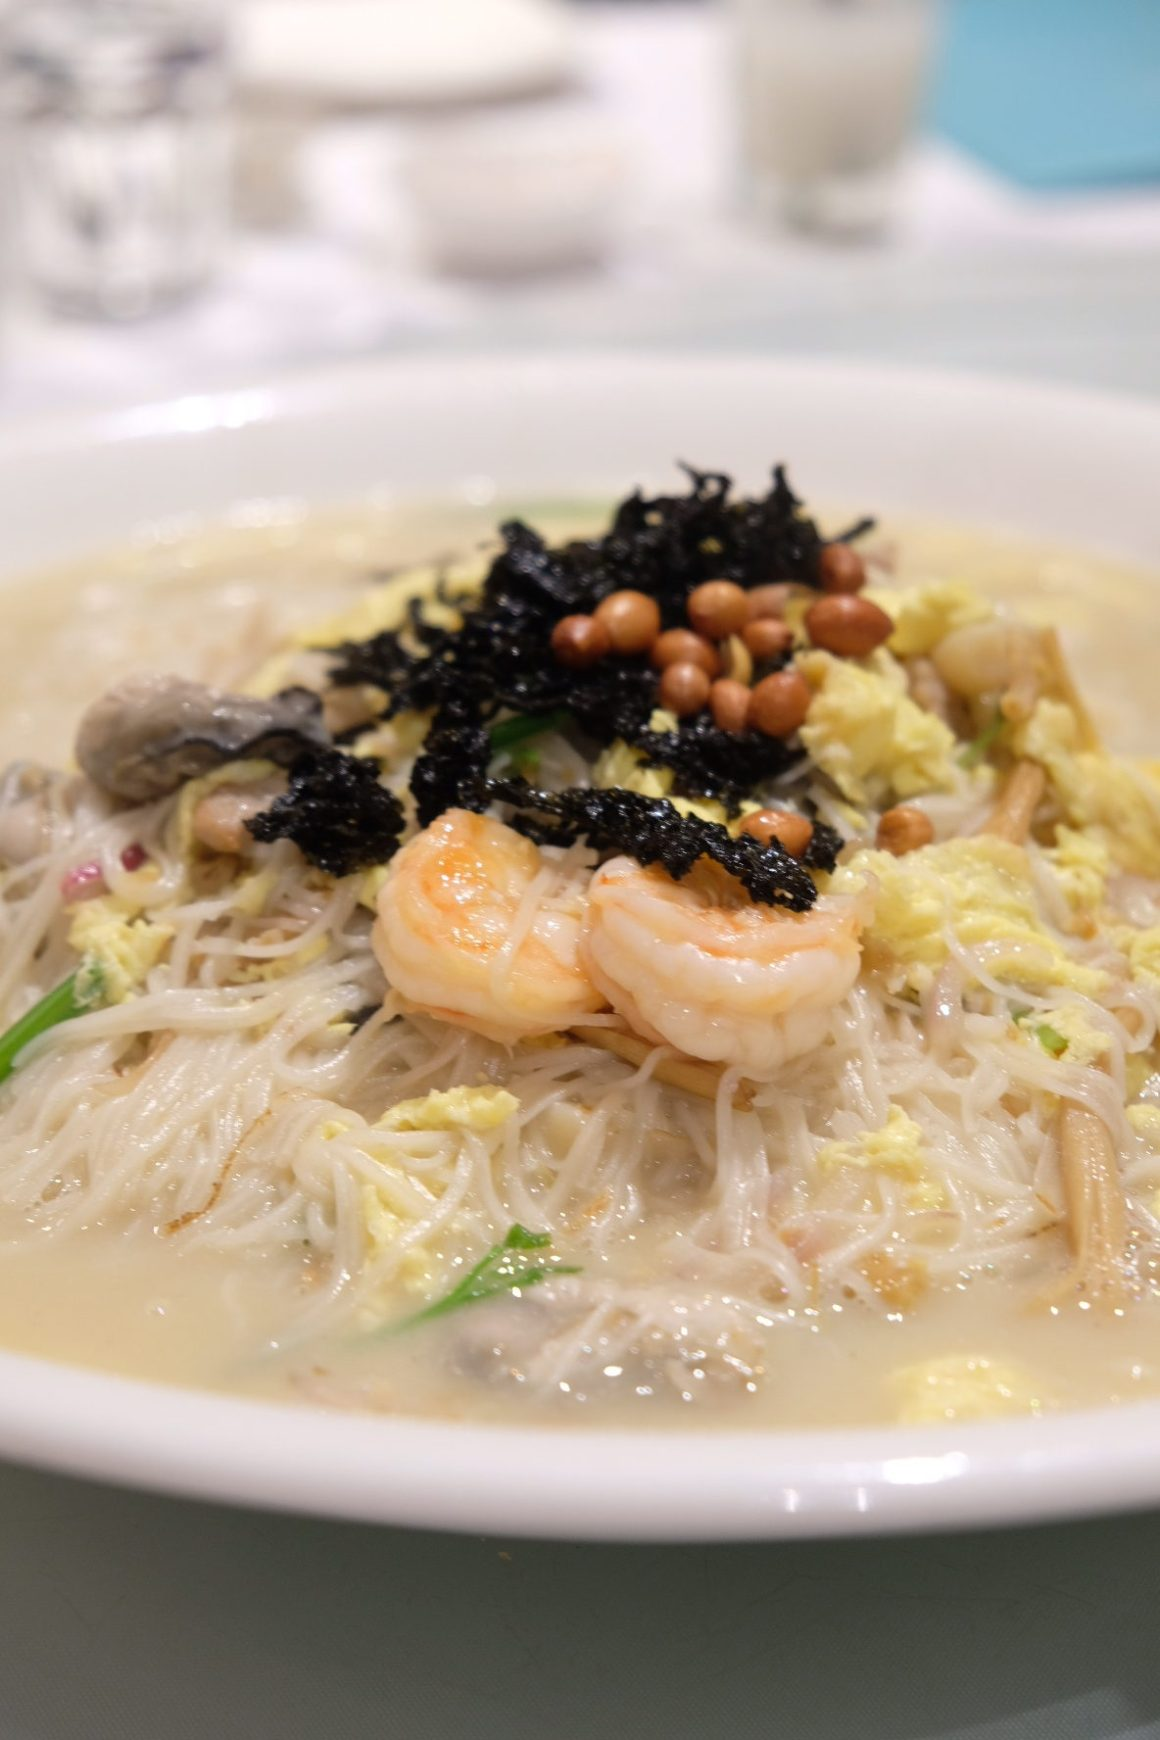 Best restaurants For Your Chinese New Year 2019 Reunion Dinner In Singapore - Putien, Longevity Noodles